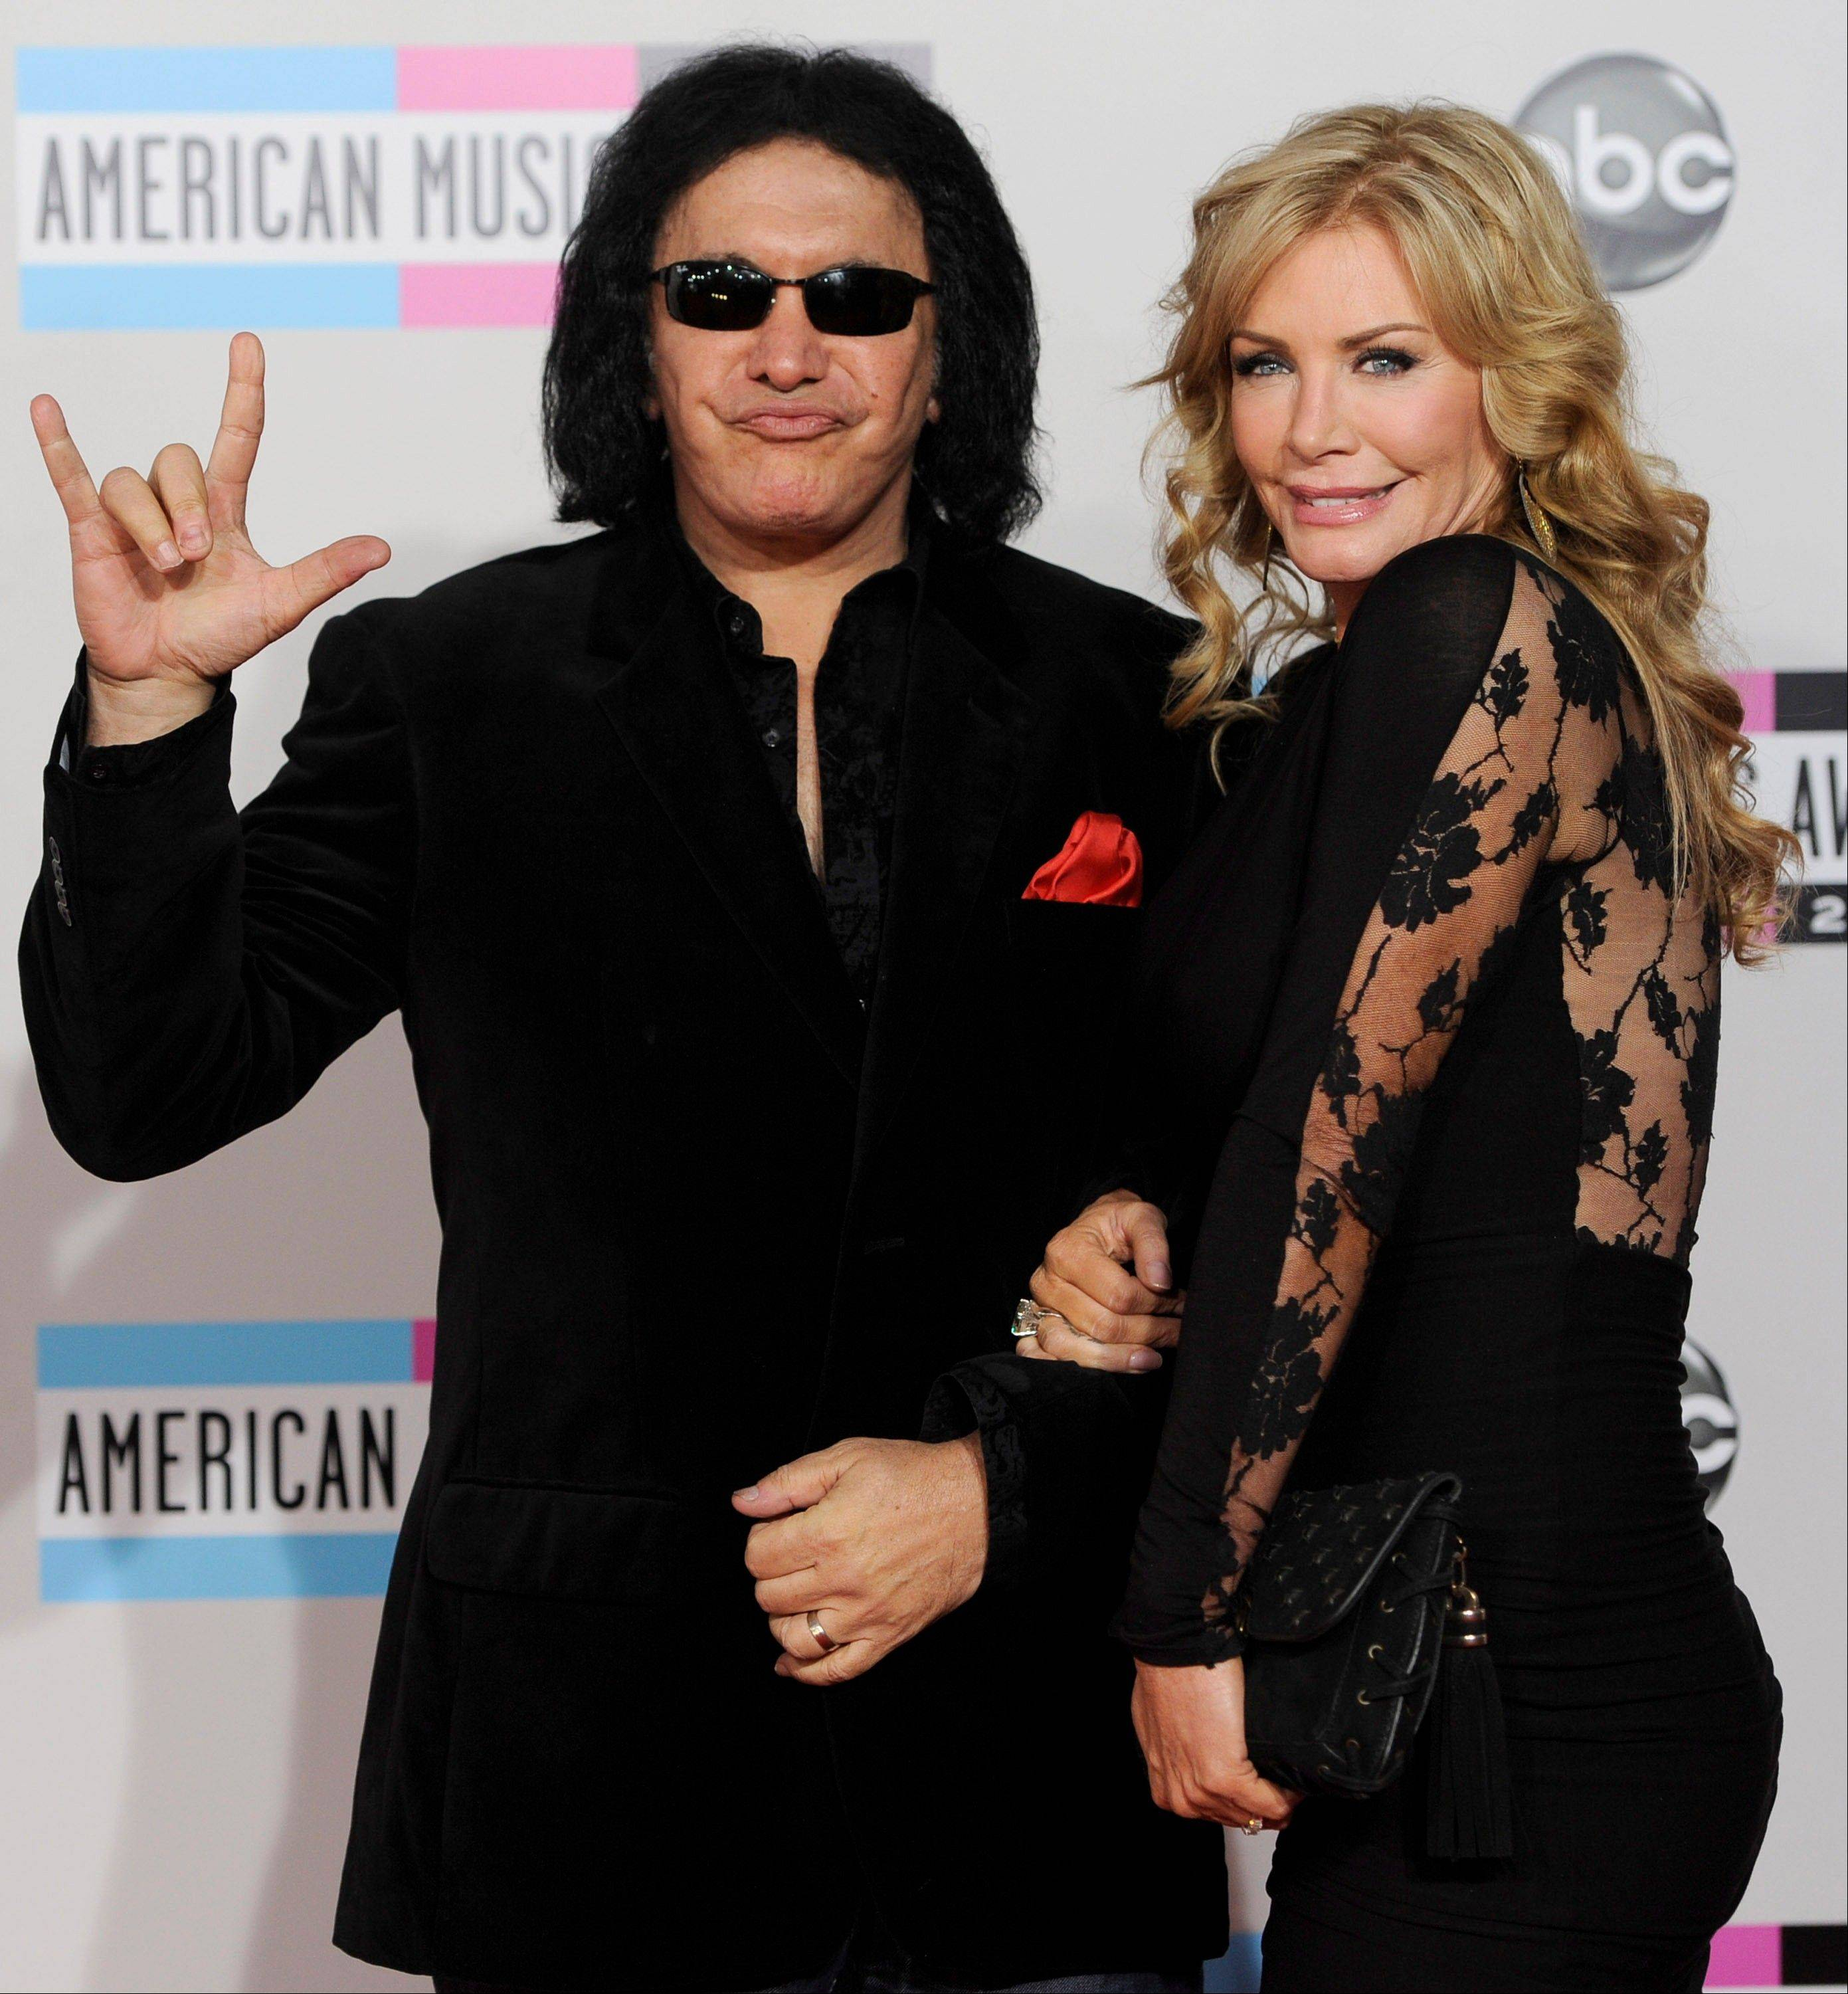 Gene Simmons, left, and Shannon Tweed arrive at the 39th Annual American Music Awards on Sunday, Nov. 20, 2011 in Los Angeles.